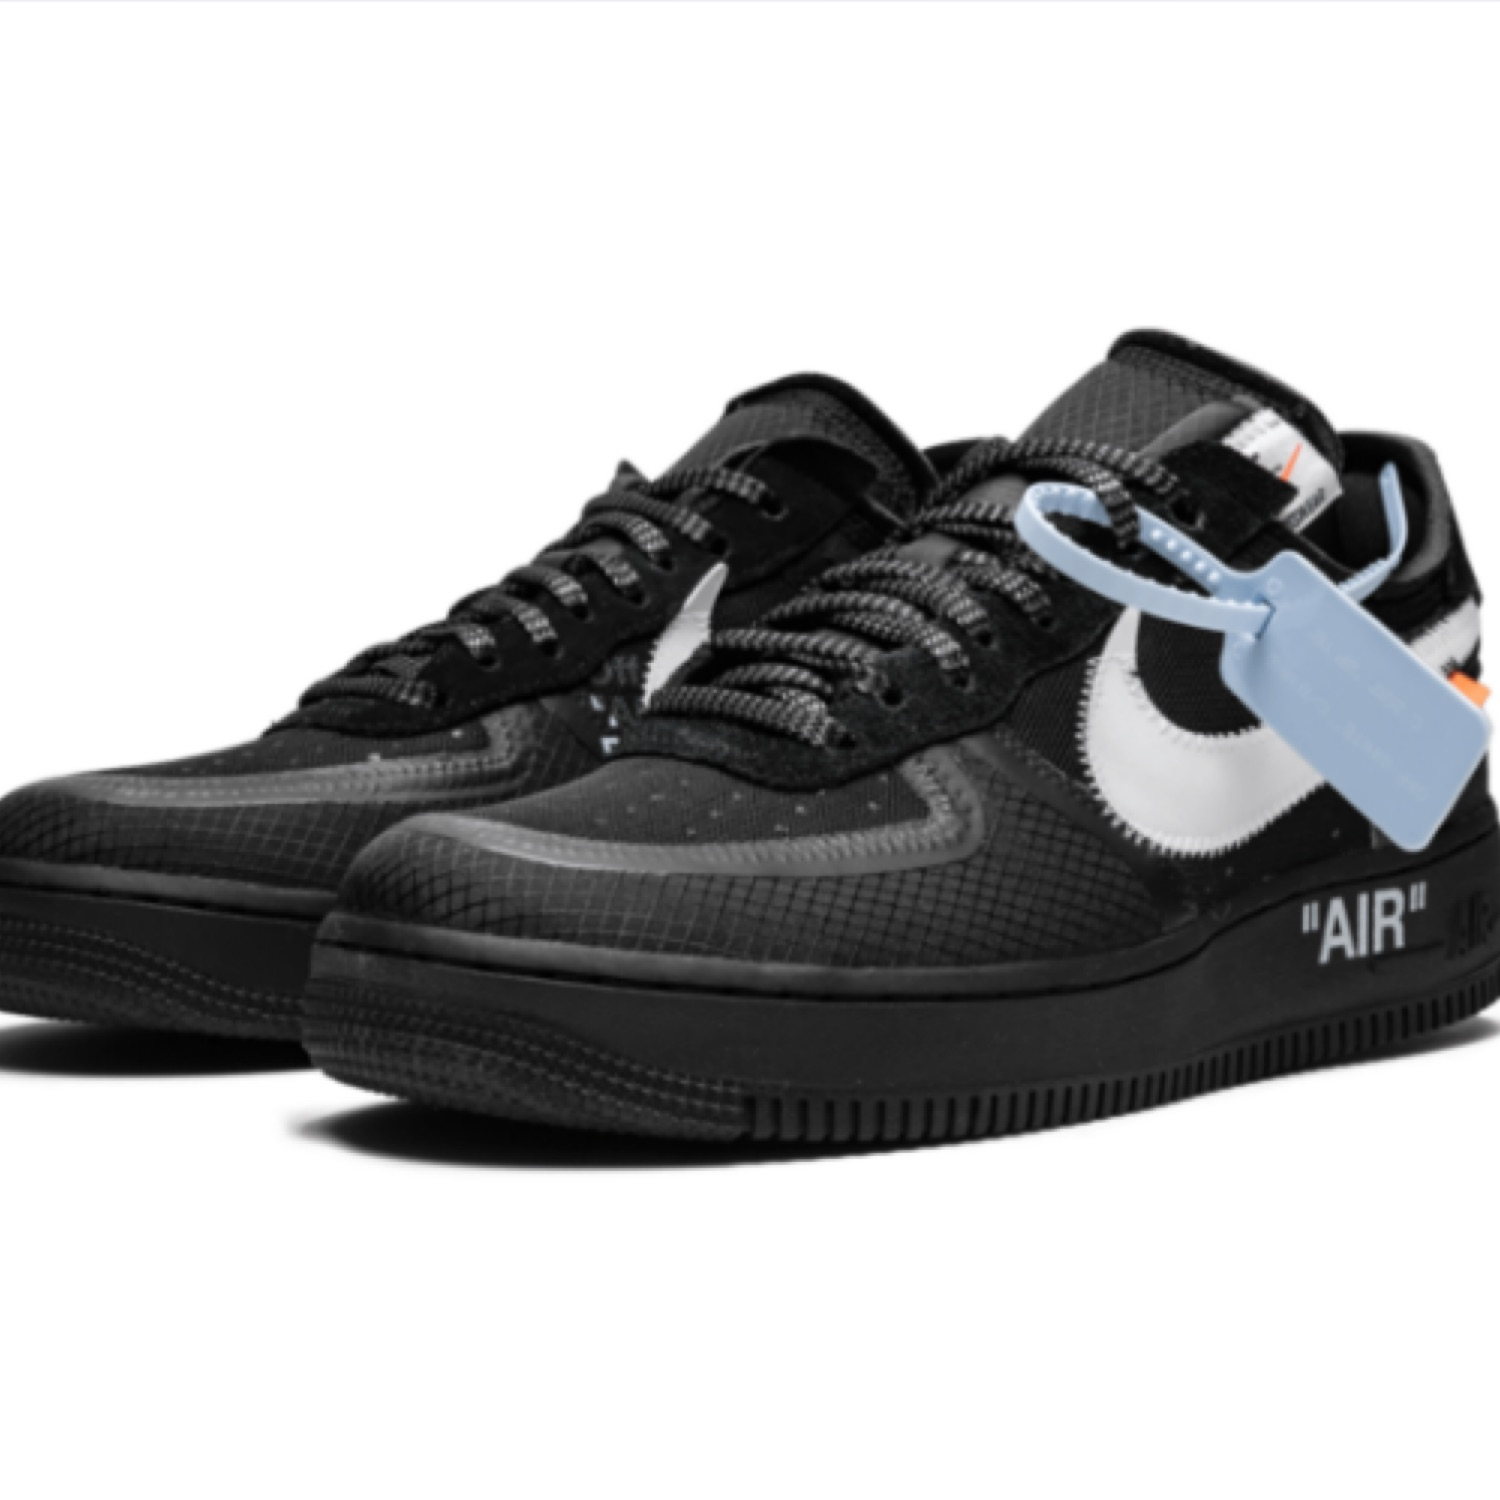 Off-White X Nike Air Force 1 Low Black 'The Ten'